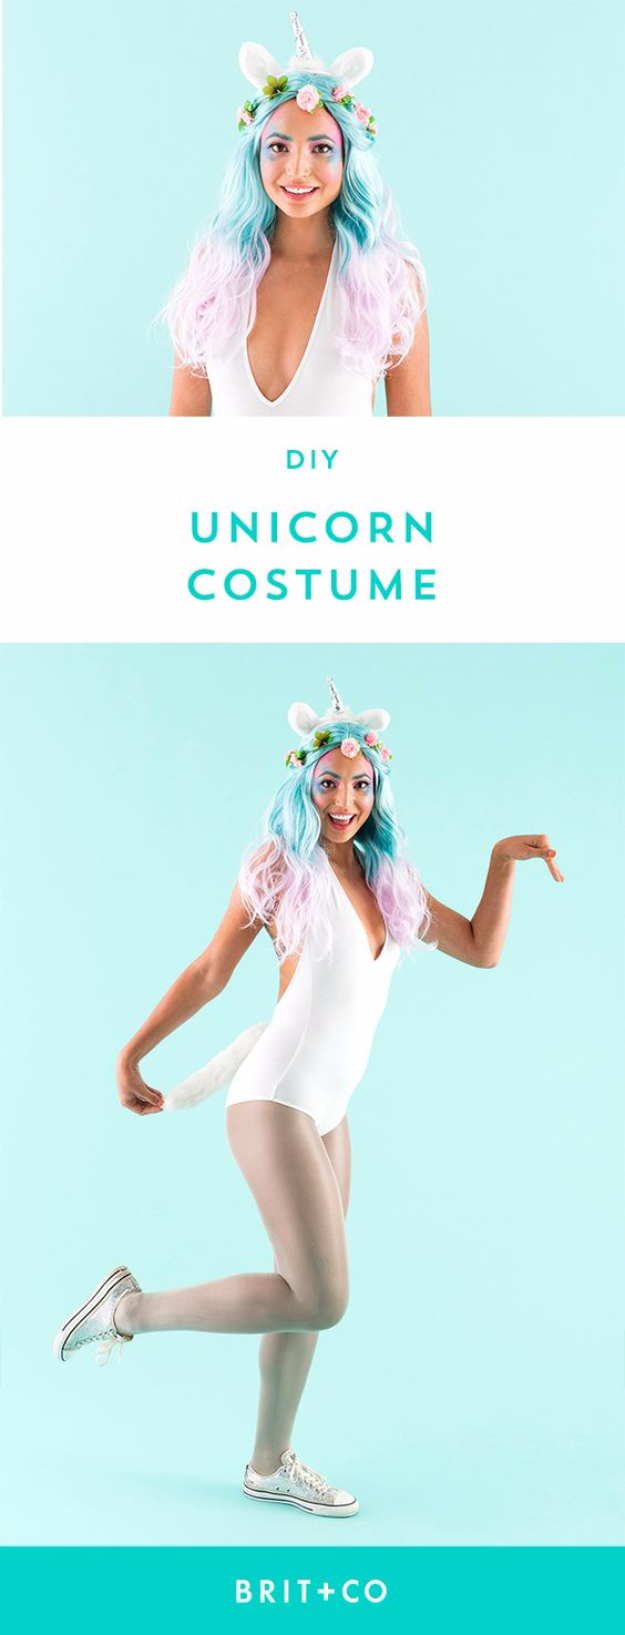 Best DIY Halloween Costume Ideas - DIY Unicorn Costume - Do It Yourself Costumes for Women, Men, Teens, Adults and Couples. Fun, Easy, Clever, Cheap and Creative Costumes That Will Win The Contest